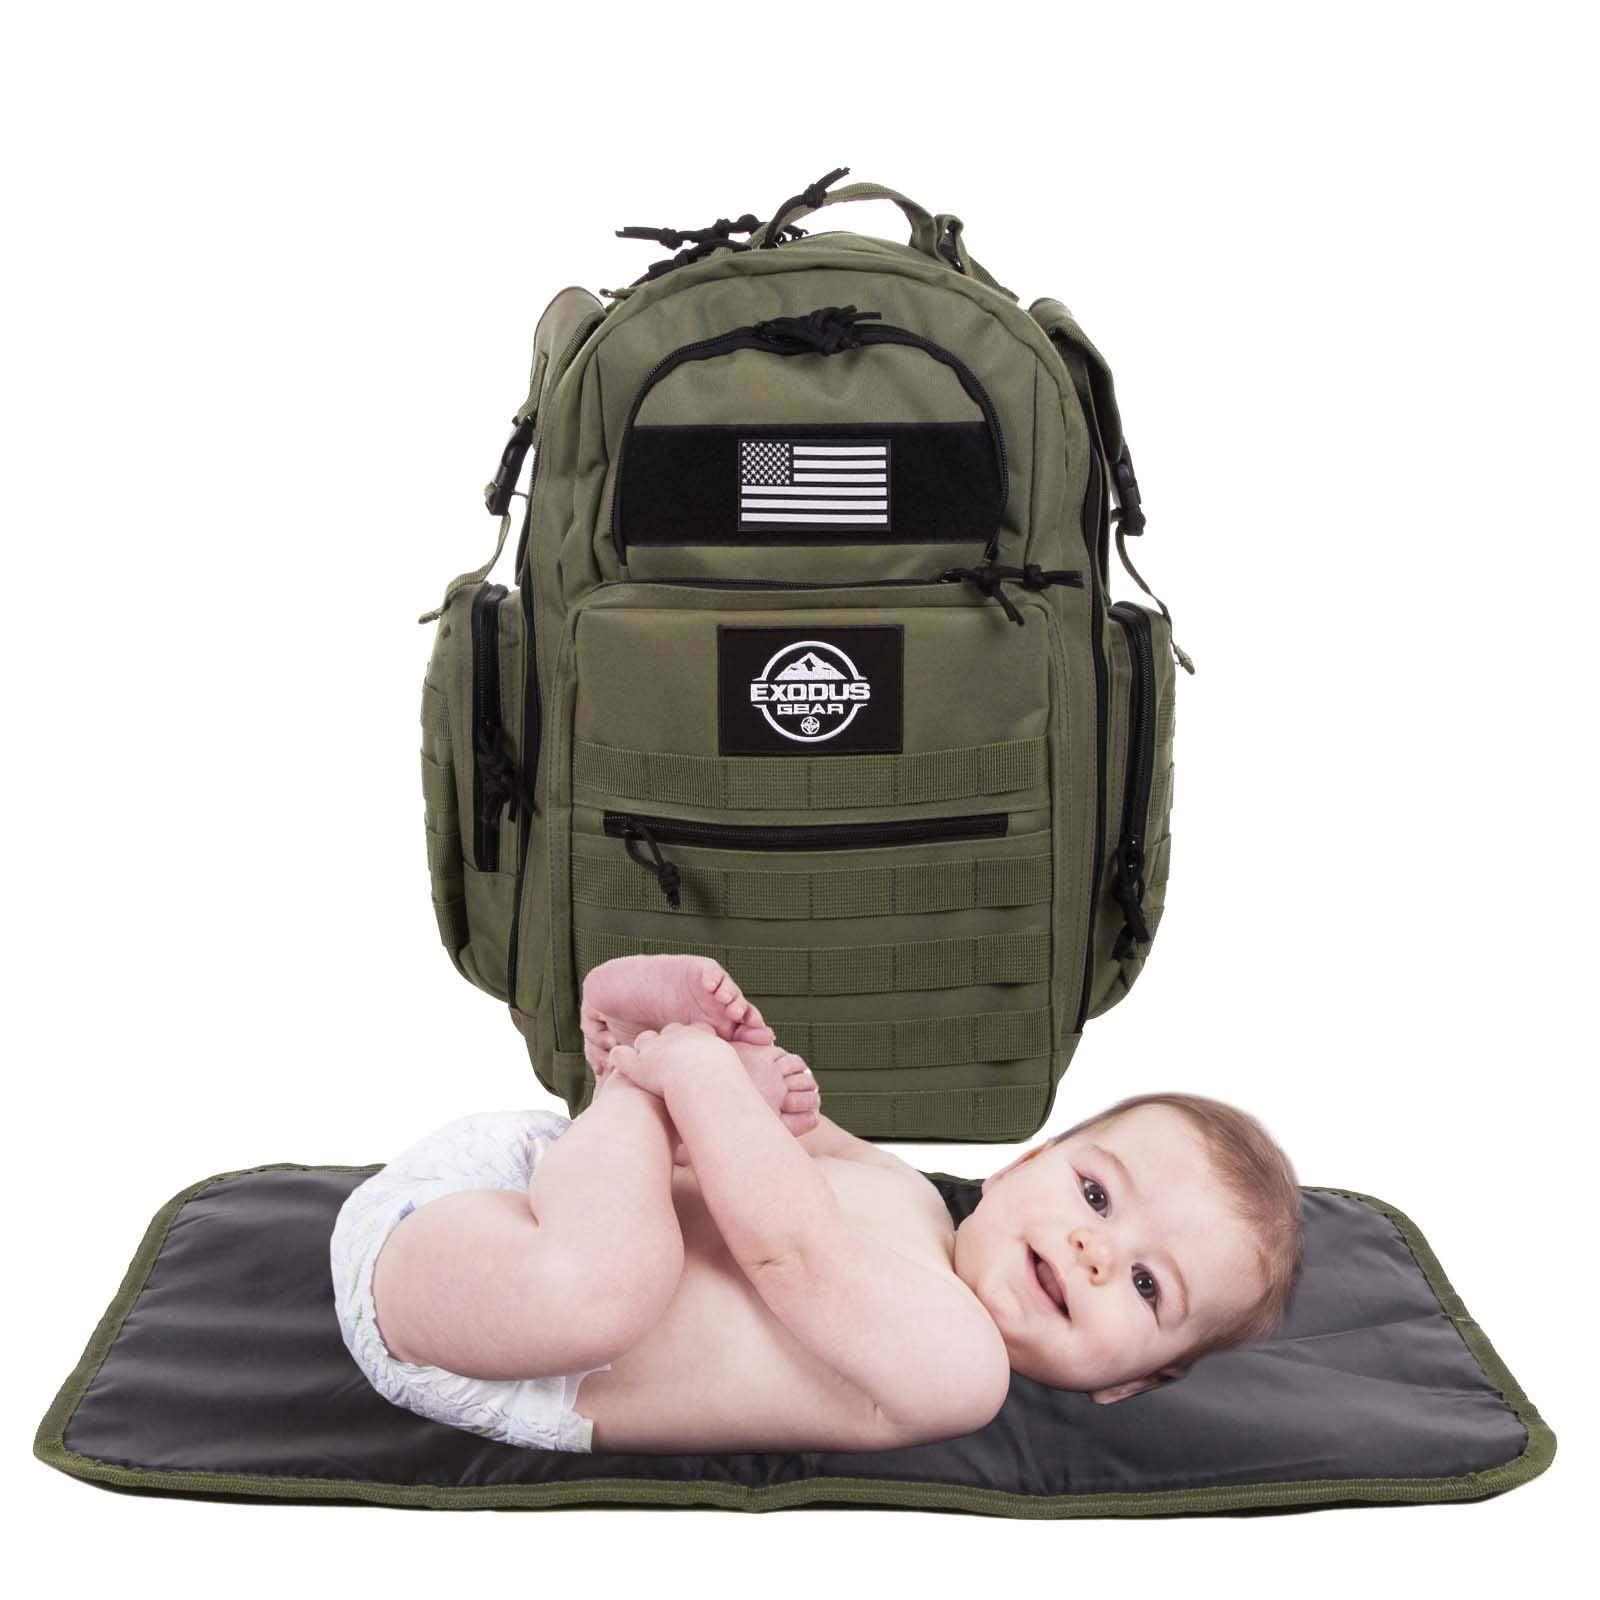 Diaper Bag Backpack by Exodus Gear + Adventure Diaper Bag with Changing Pad + Daddy Diaper Bag for Men and Woman + Hiking Diaper Bag + Dad Diaper Bag + Unisex Diaper Bag + Baby Care (Green) by Exodus Gear (Image #4)